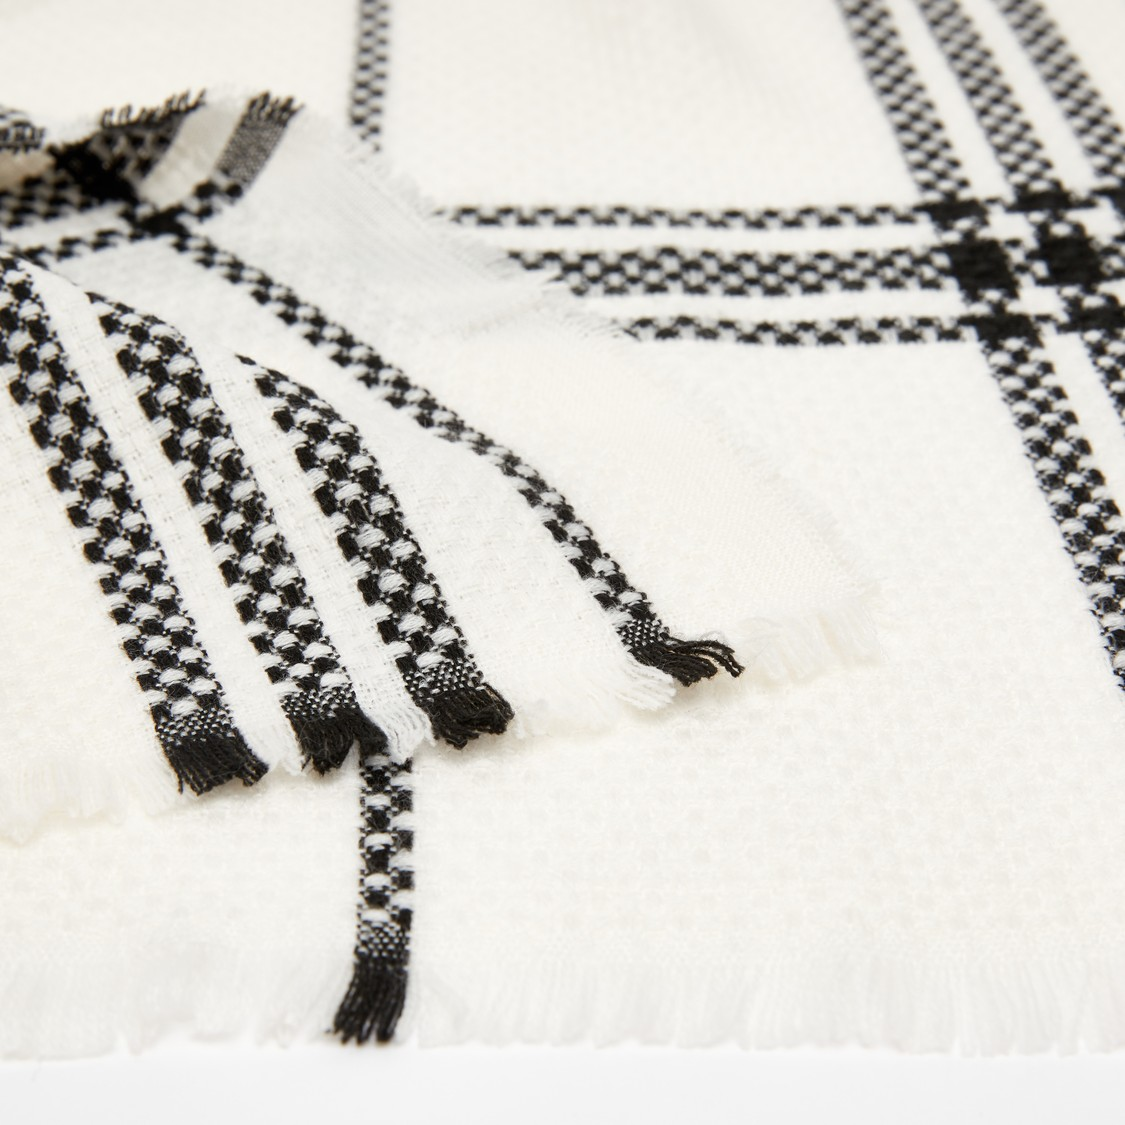 Chequered and Textured Scarf with Fringe Detail